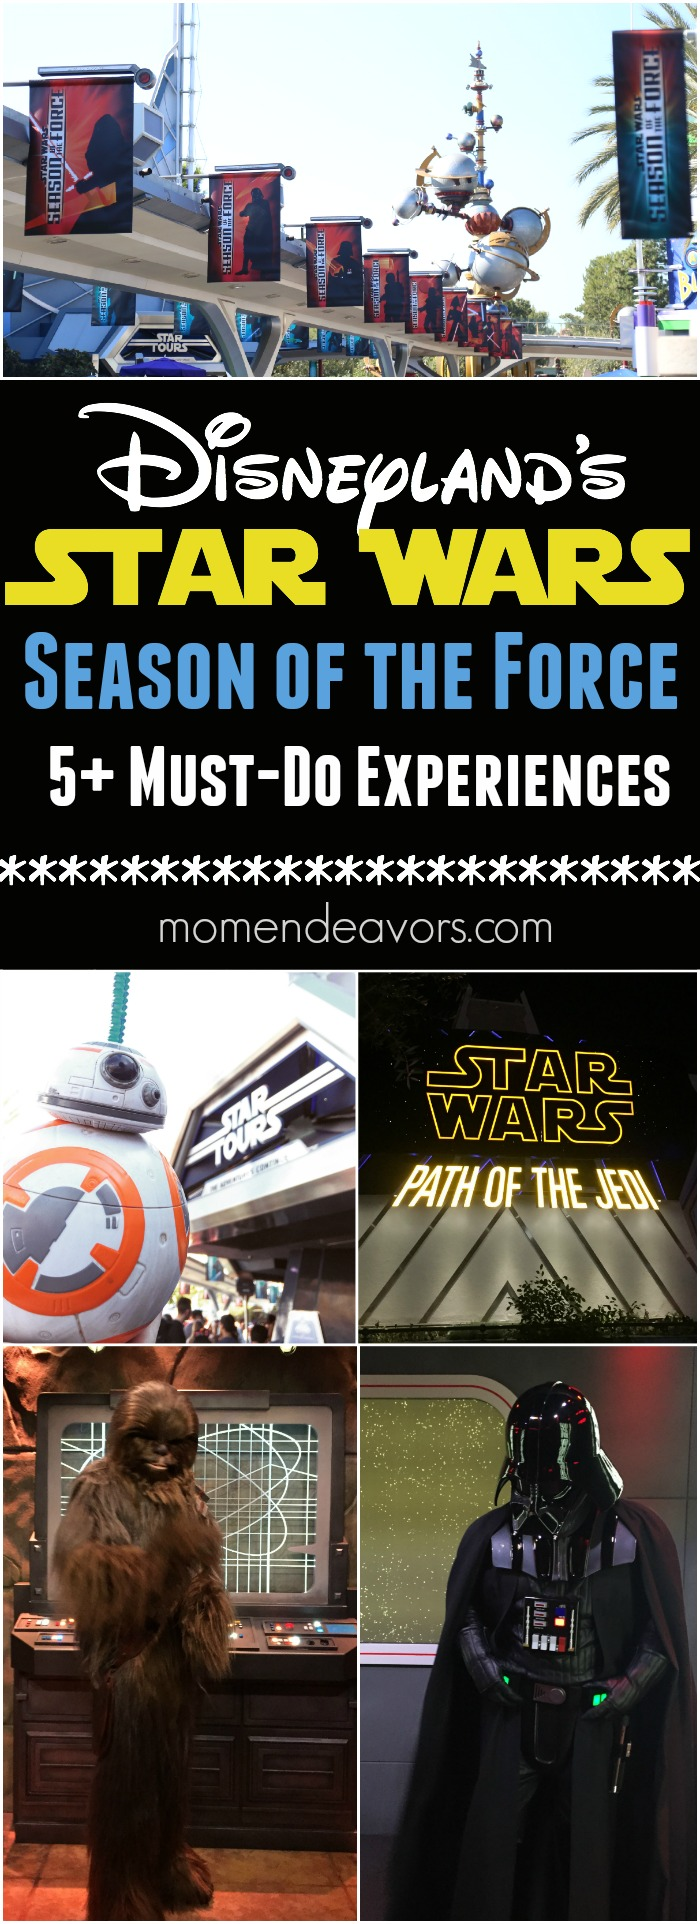 Disneyland's Season of the Force Must-Do Star Wars Experiences